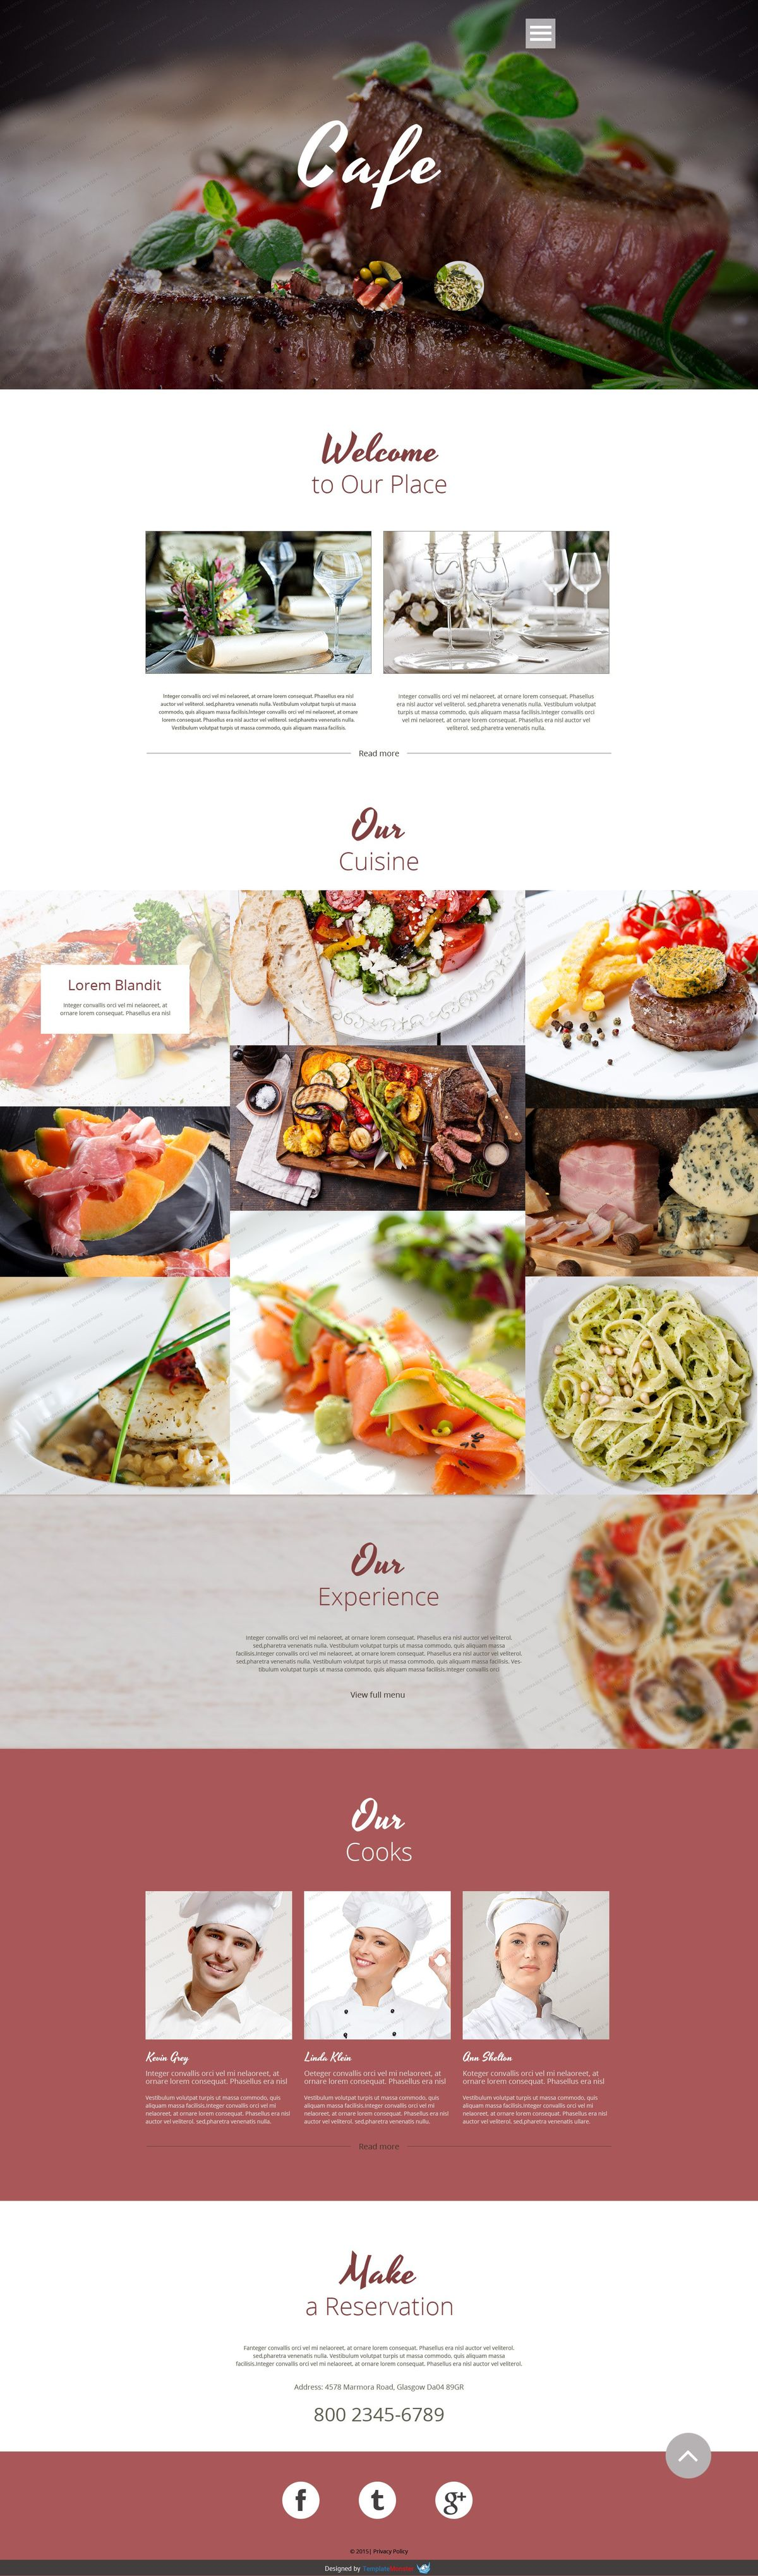 Cafe & Restaurant Free Website Templates